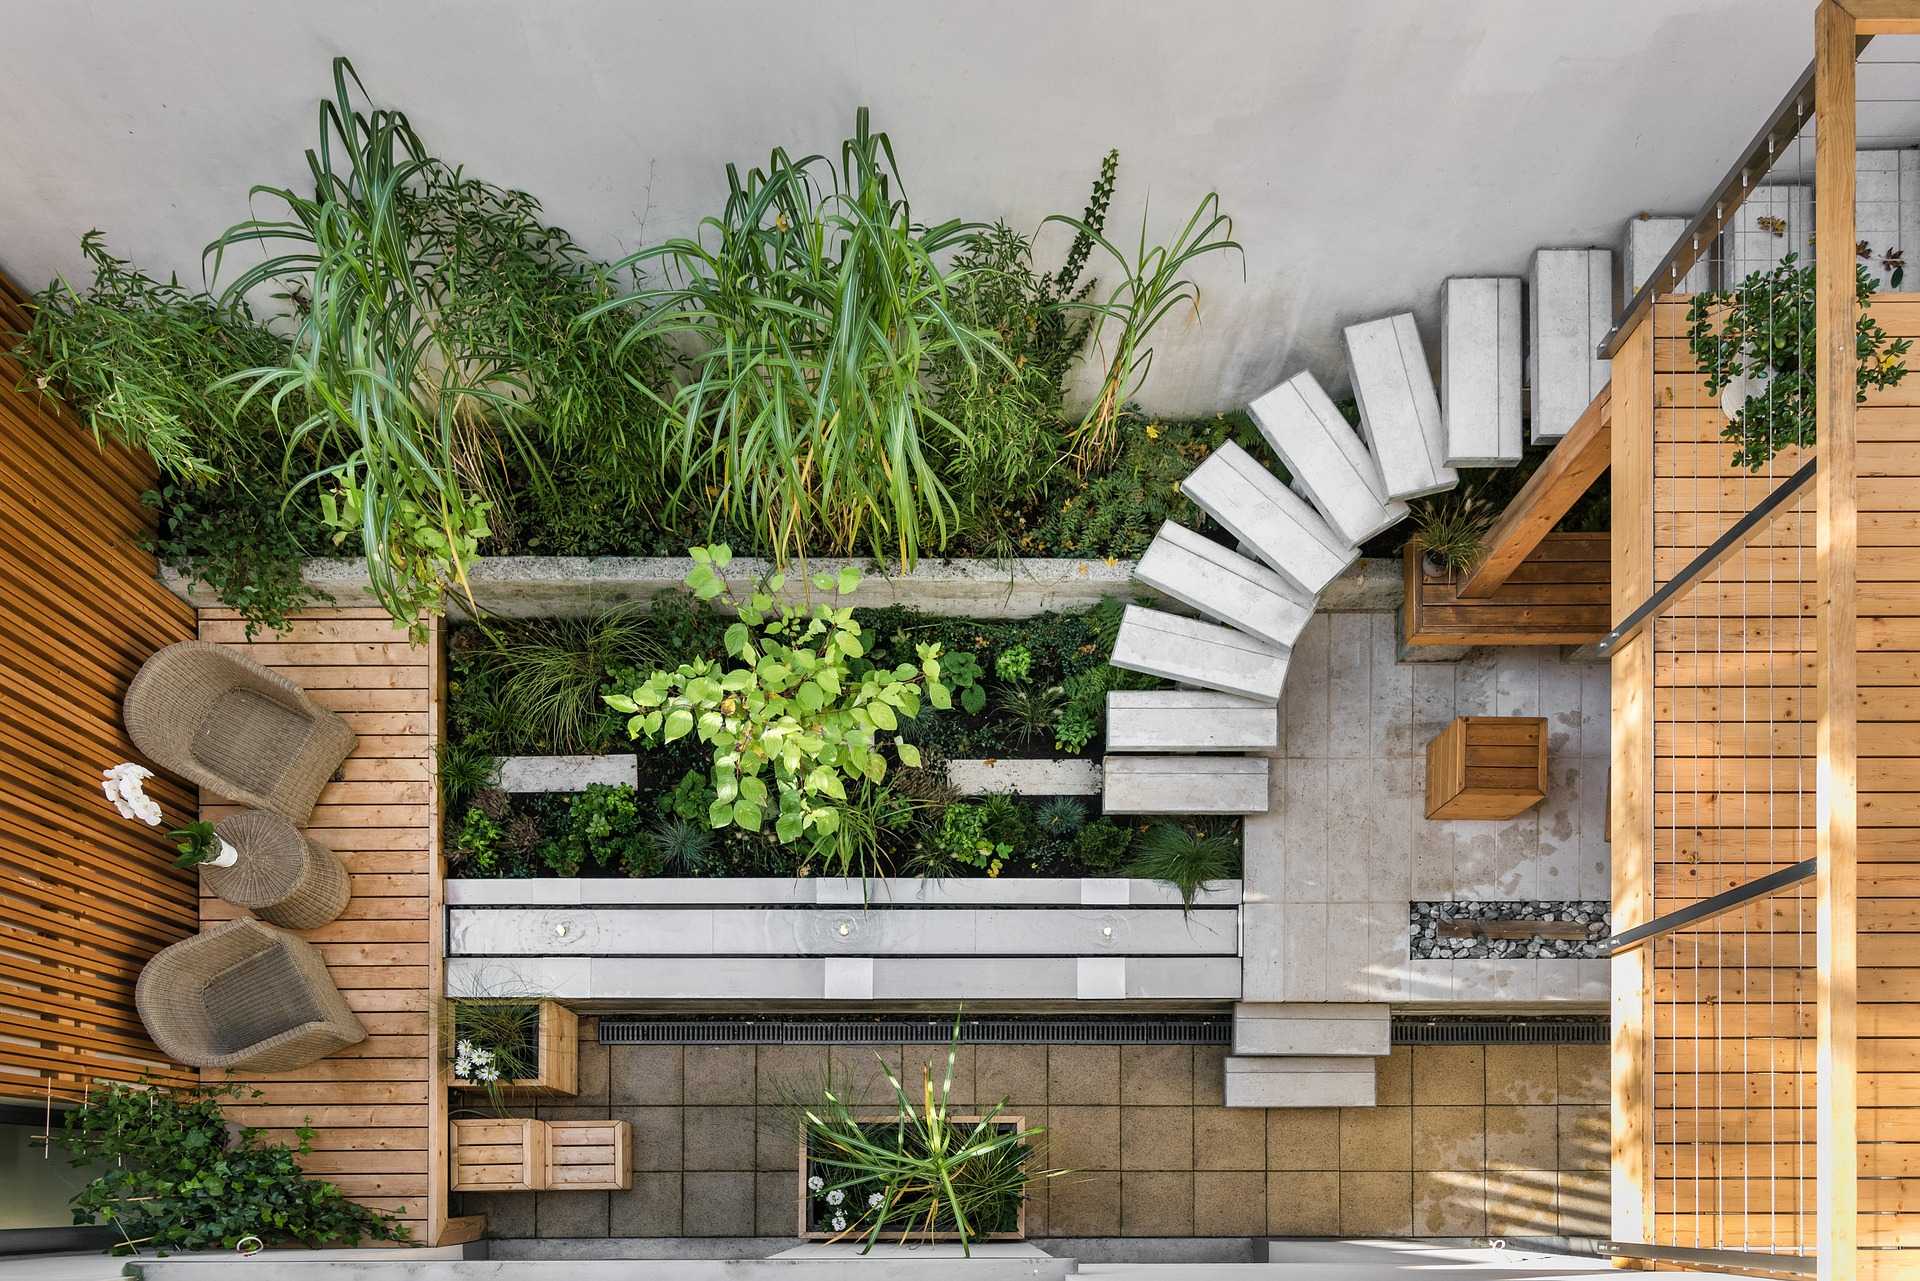 abstract-garden-design-from-above